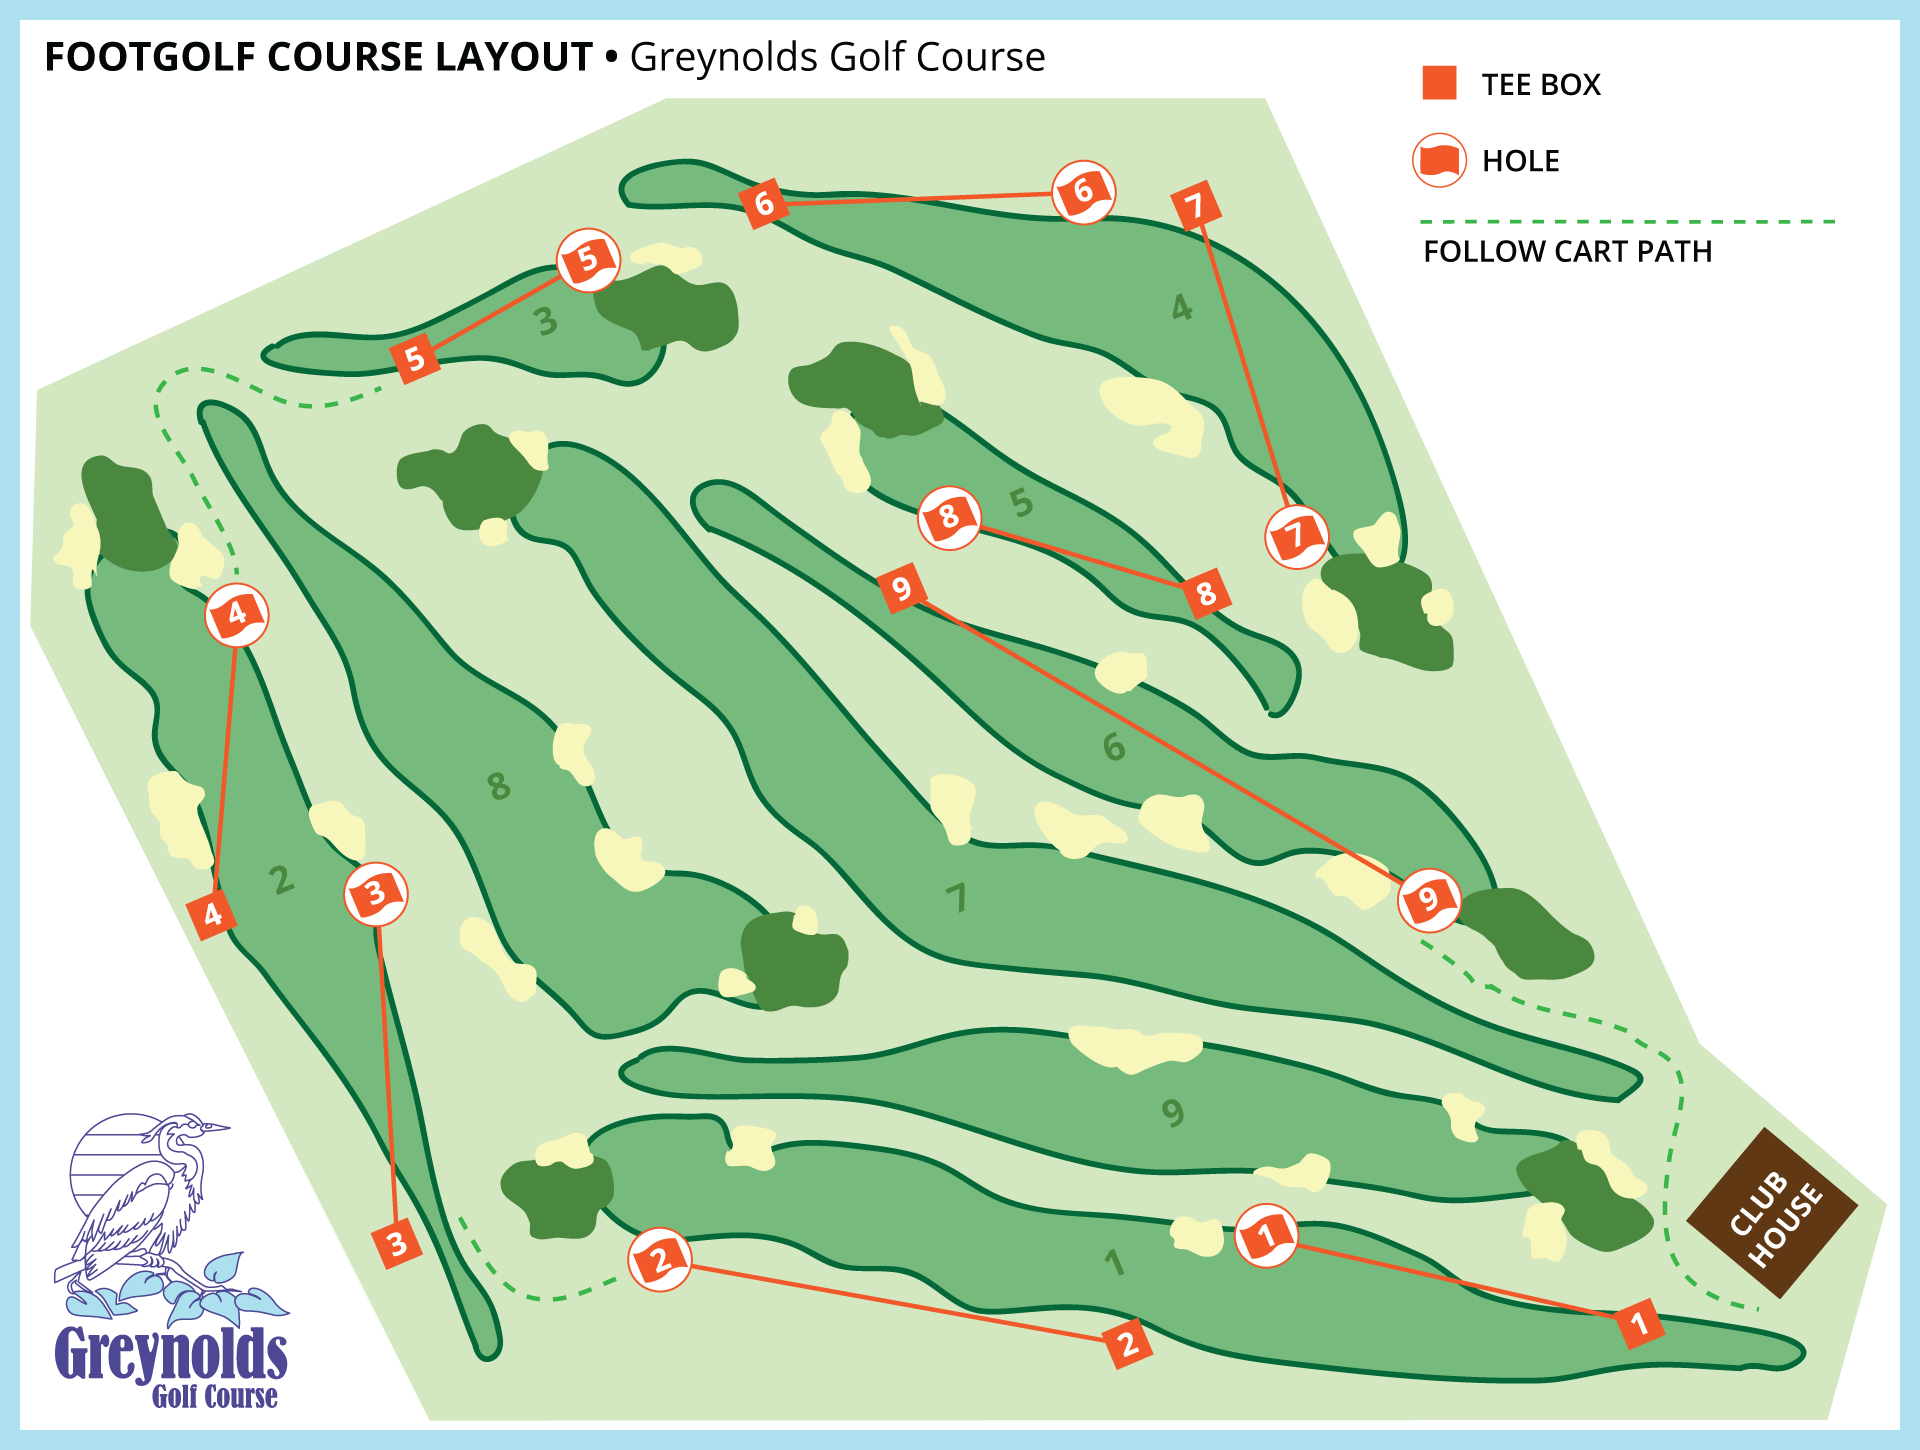 FootGolf Course Layout